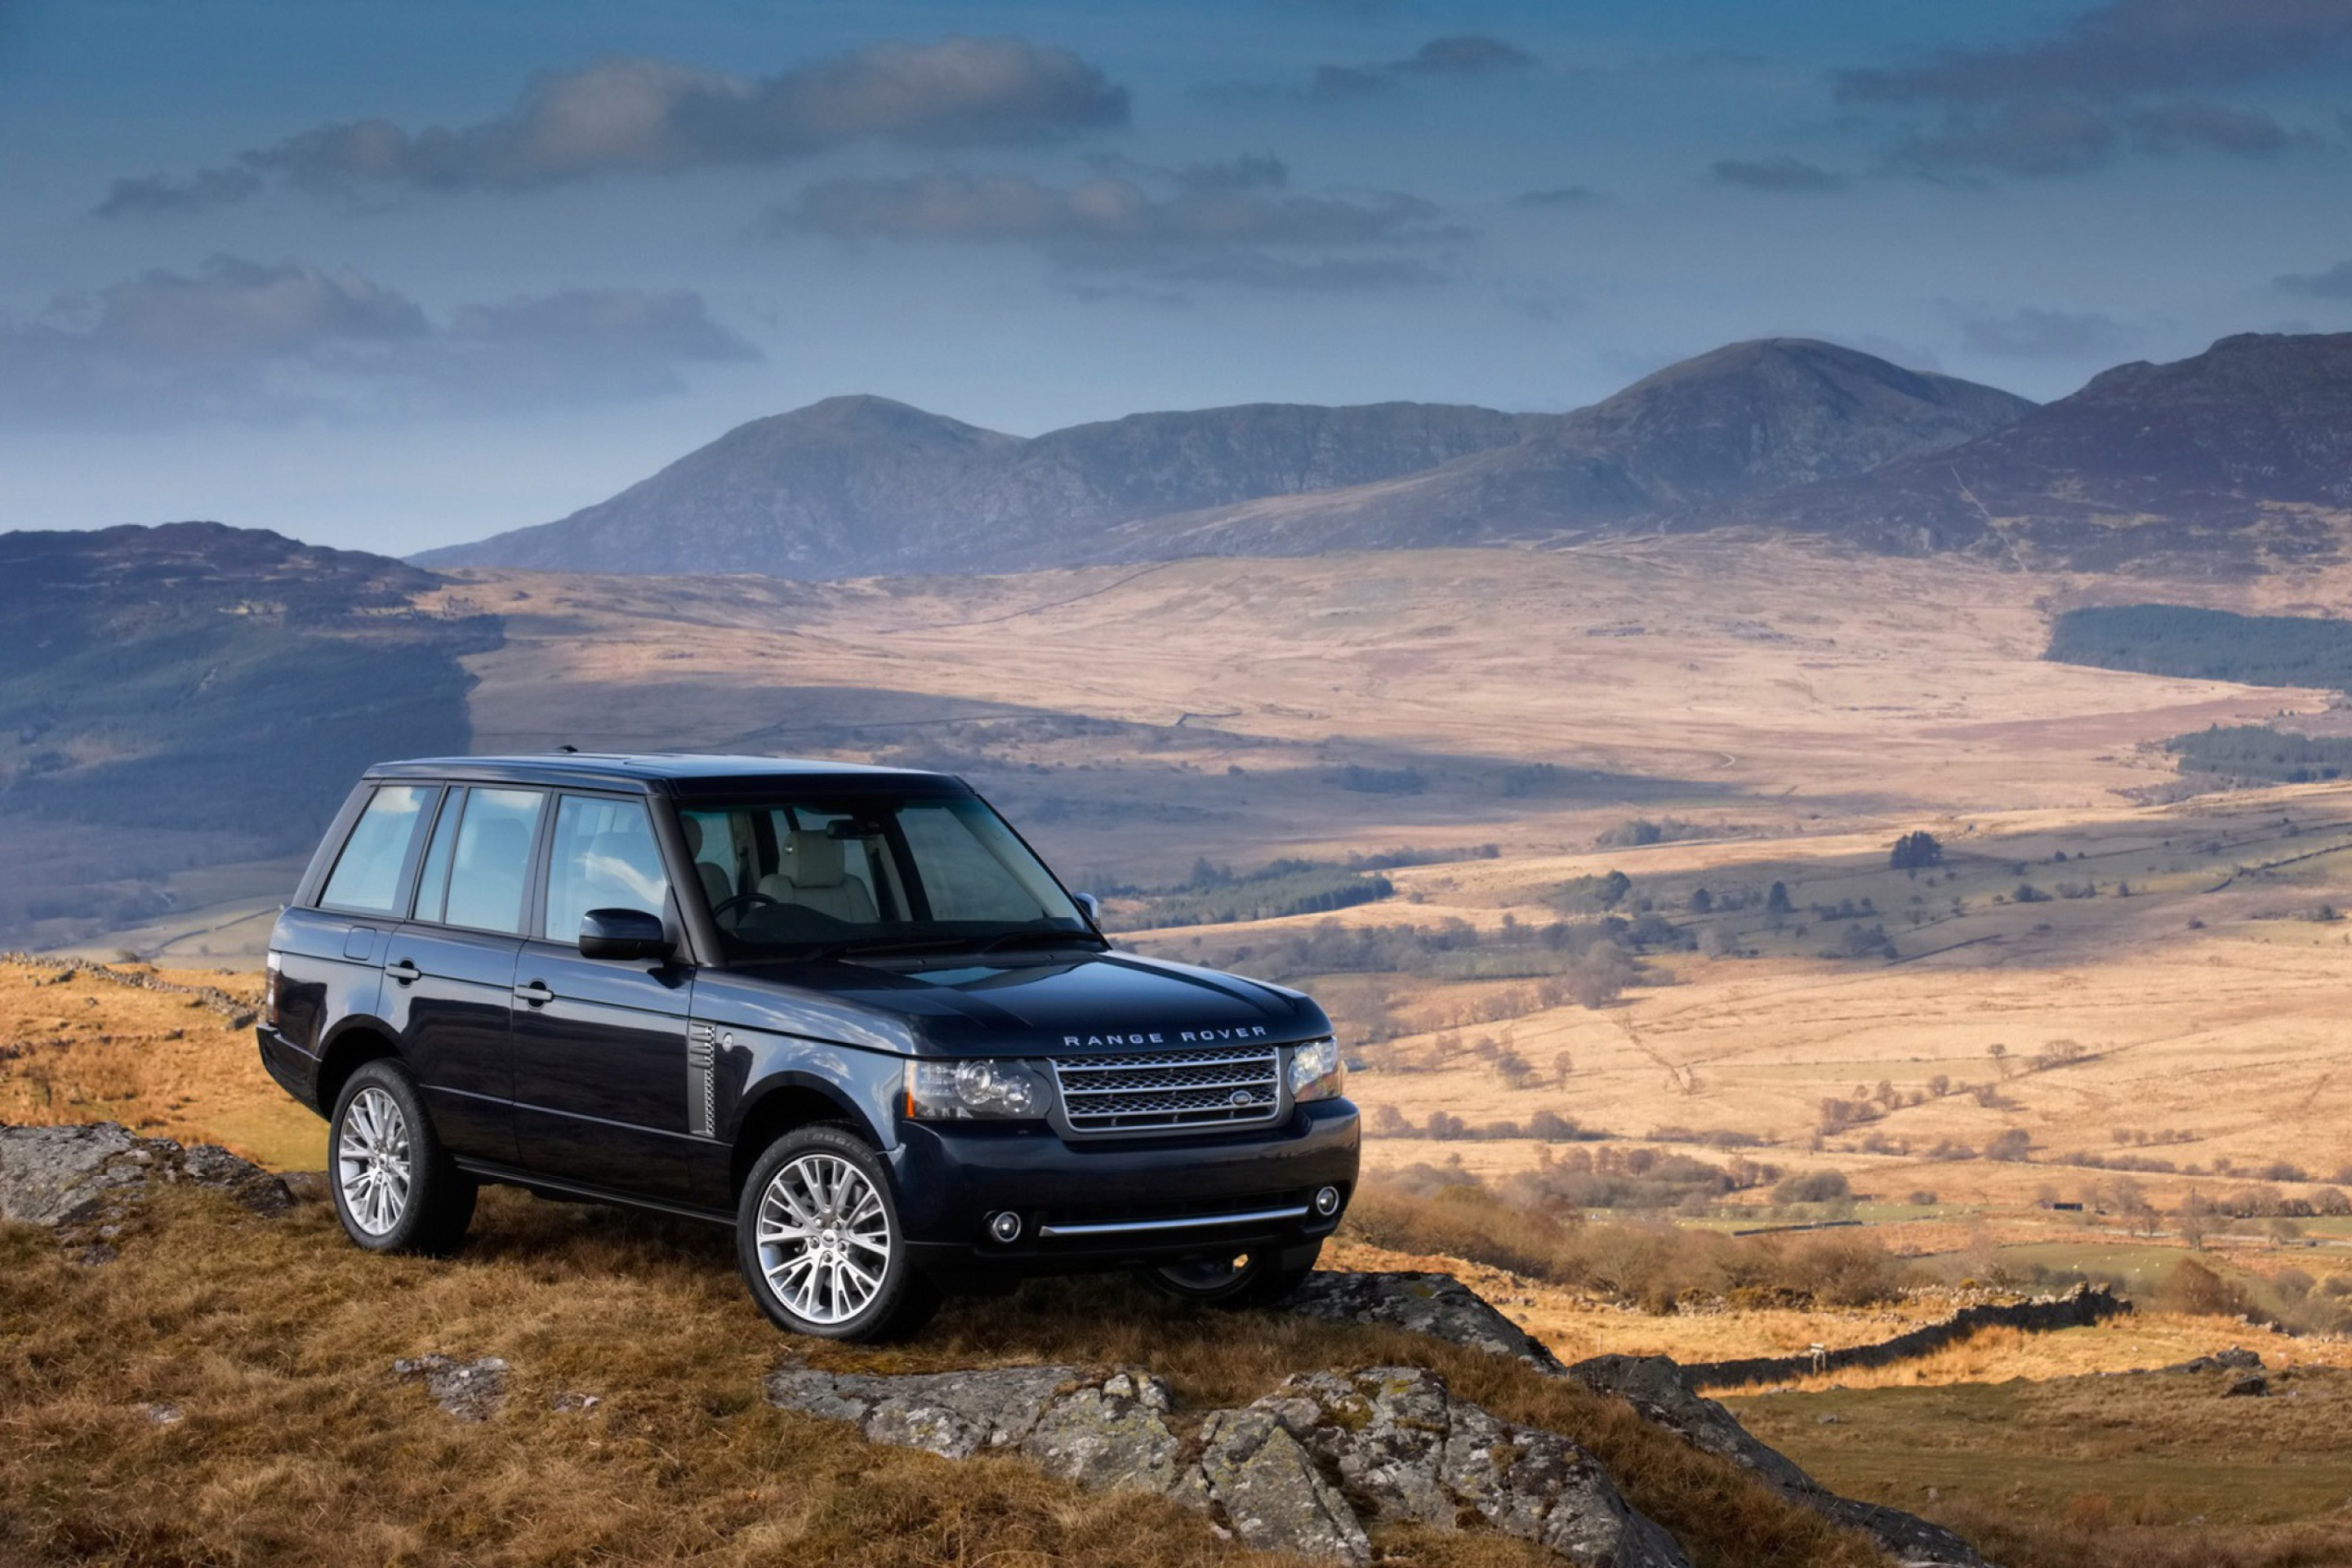 land rover has created suv containing fully functioning 4